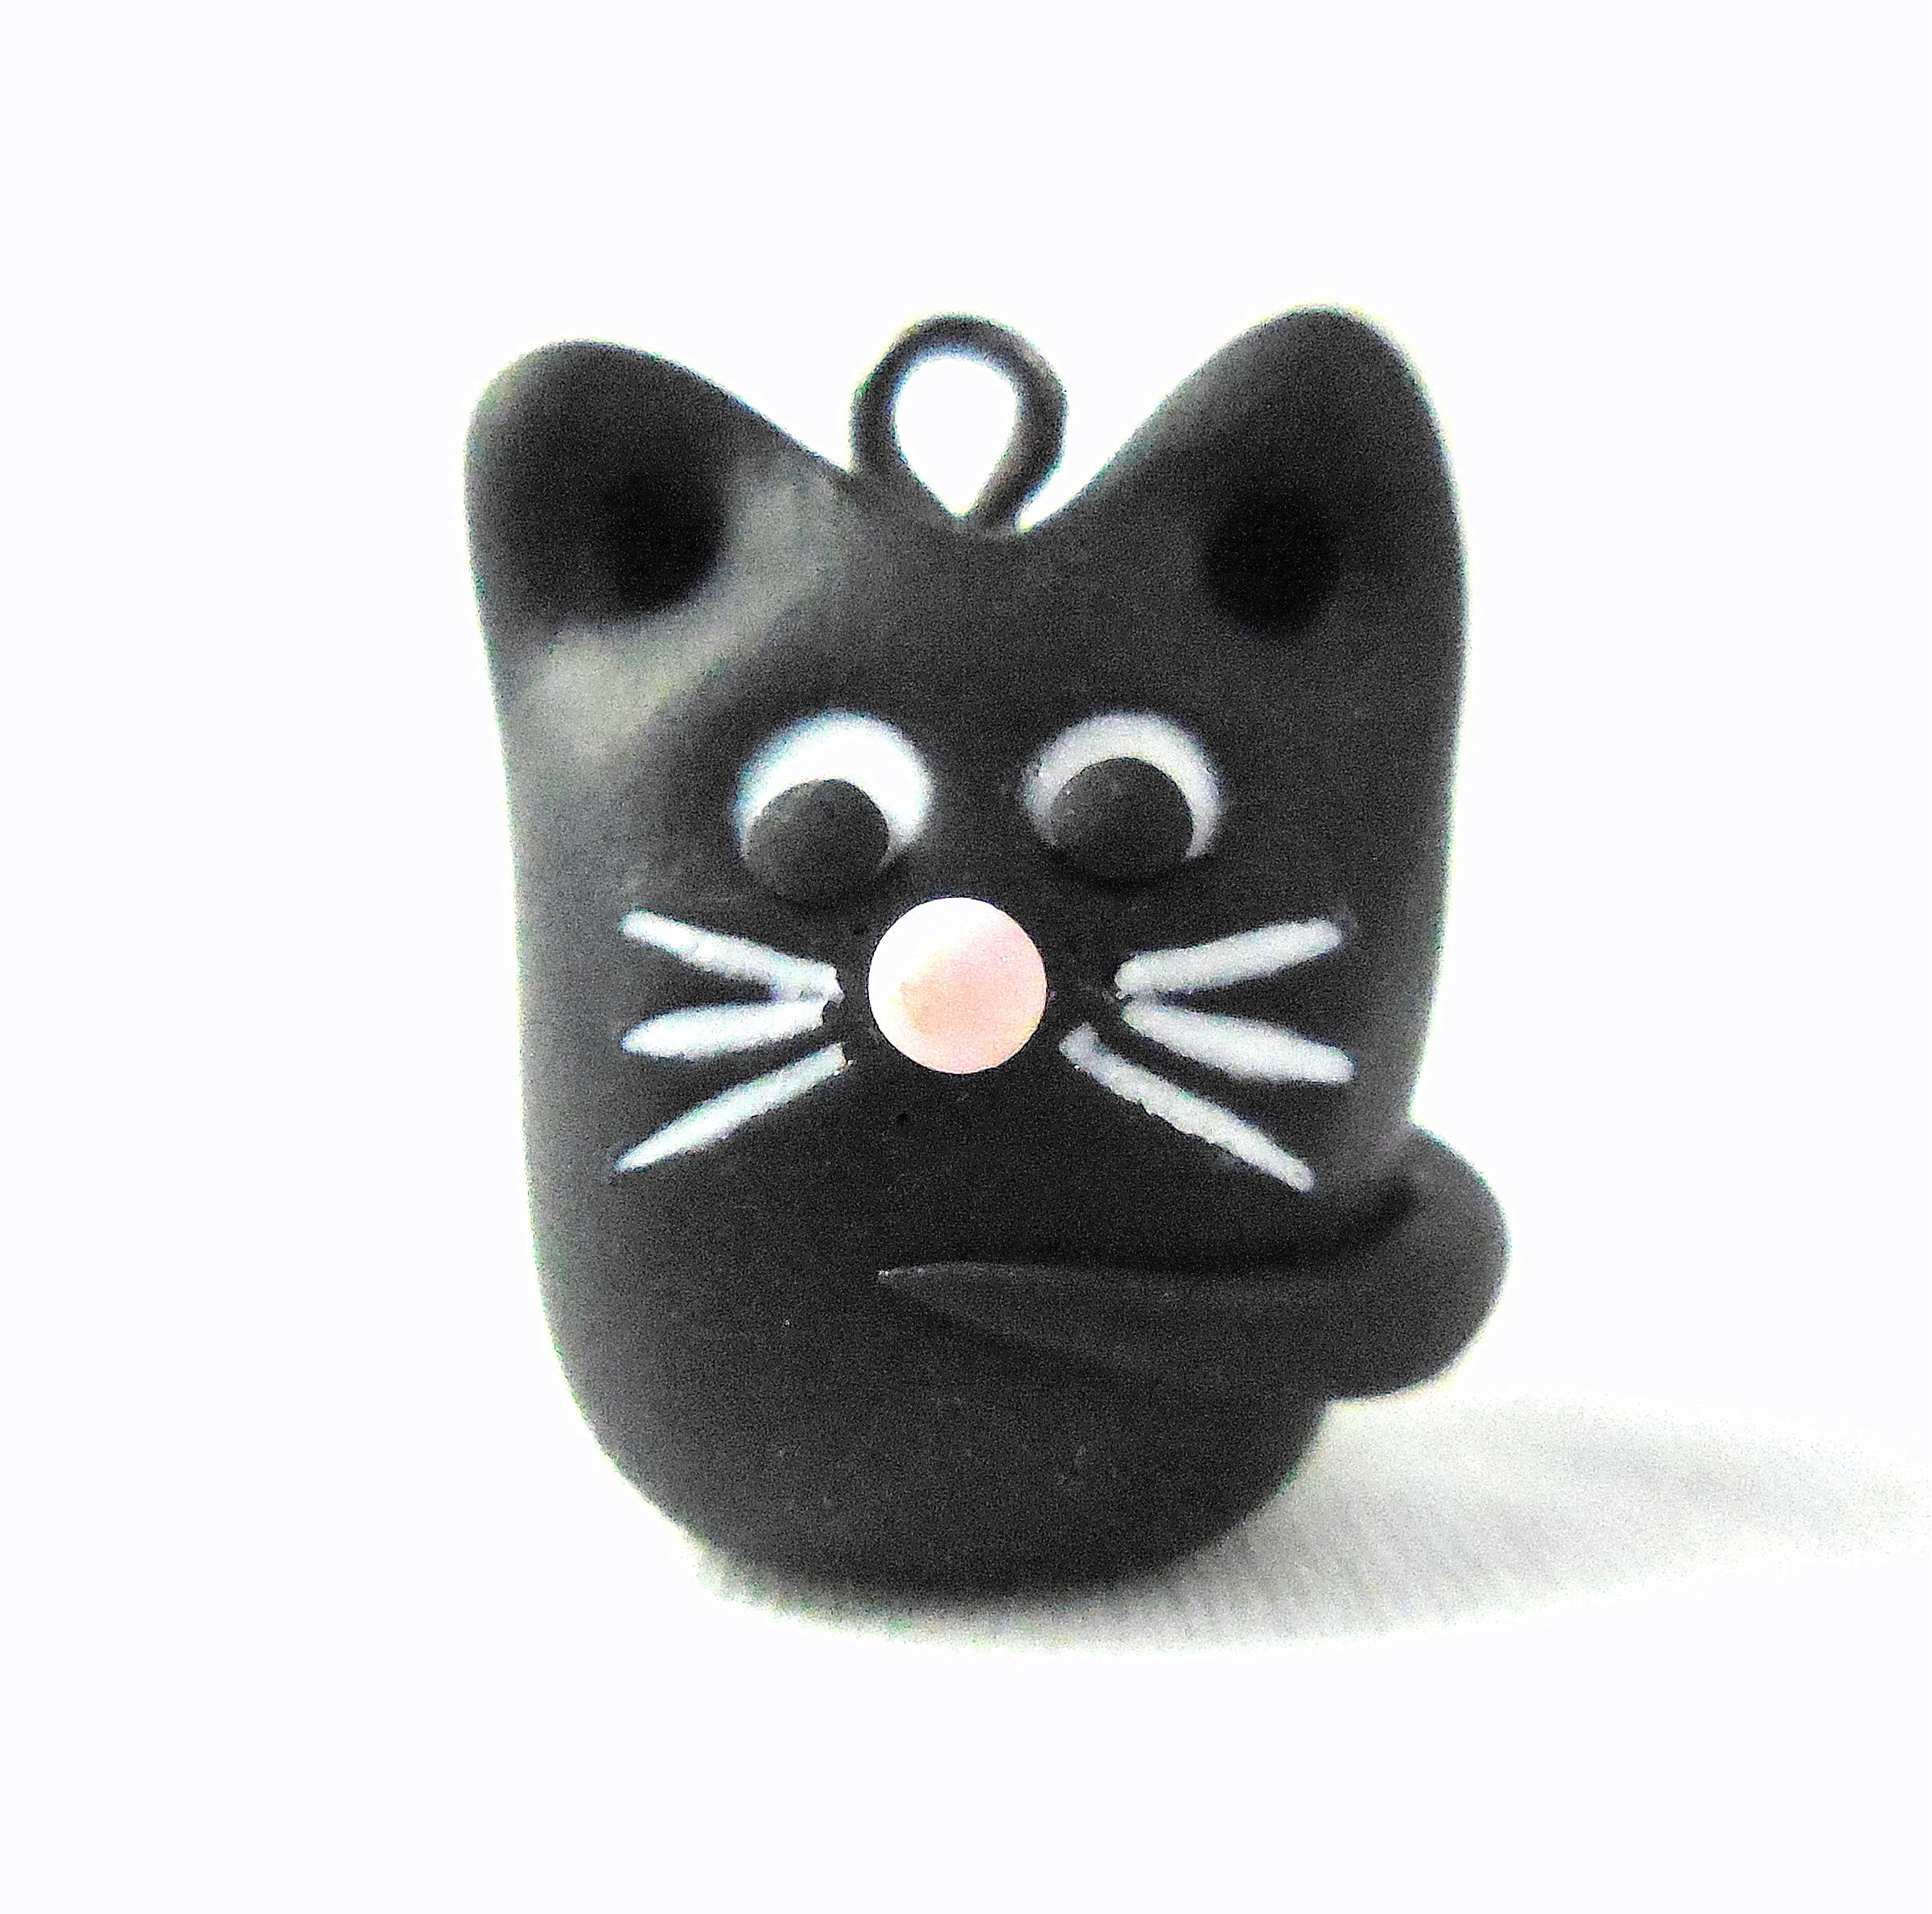 childrens necklace rhinestone product children shop jewelry index better jewellery whimsy s black gift cat